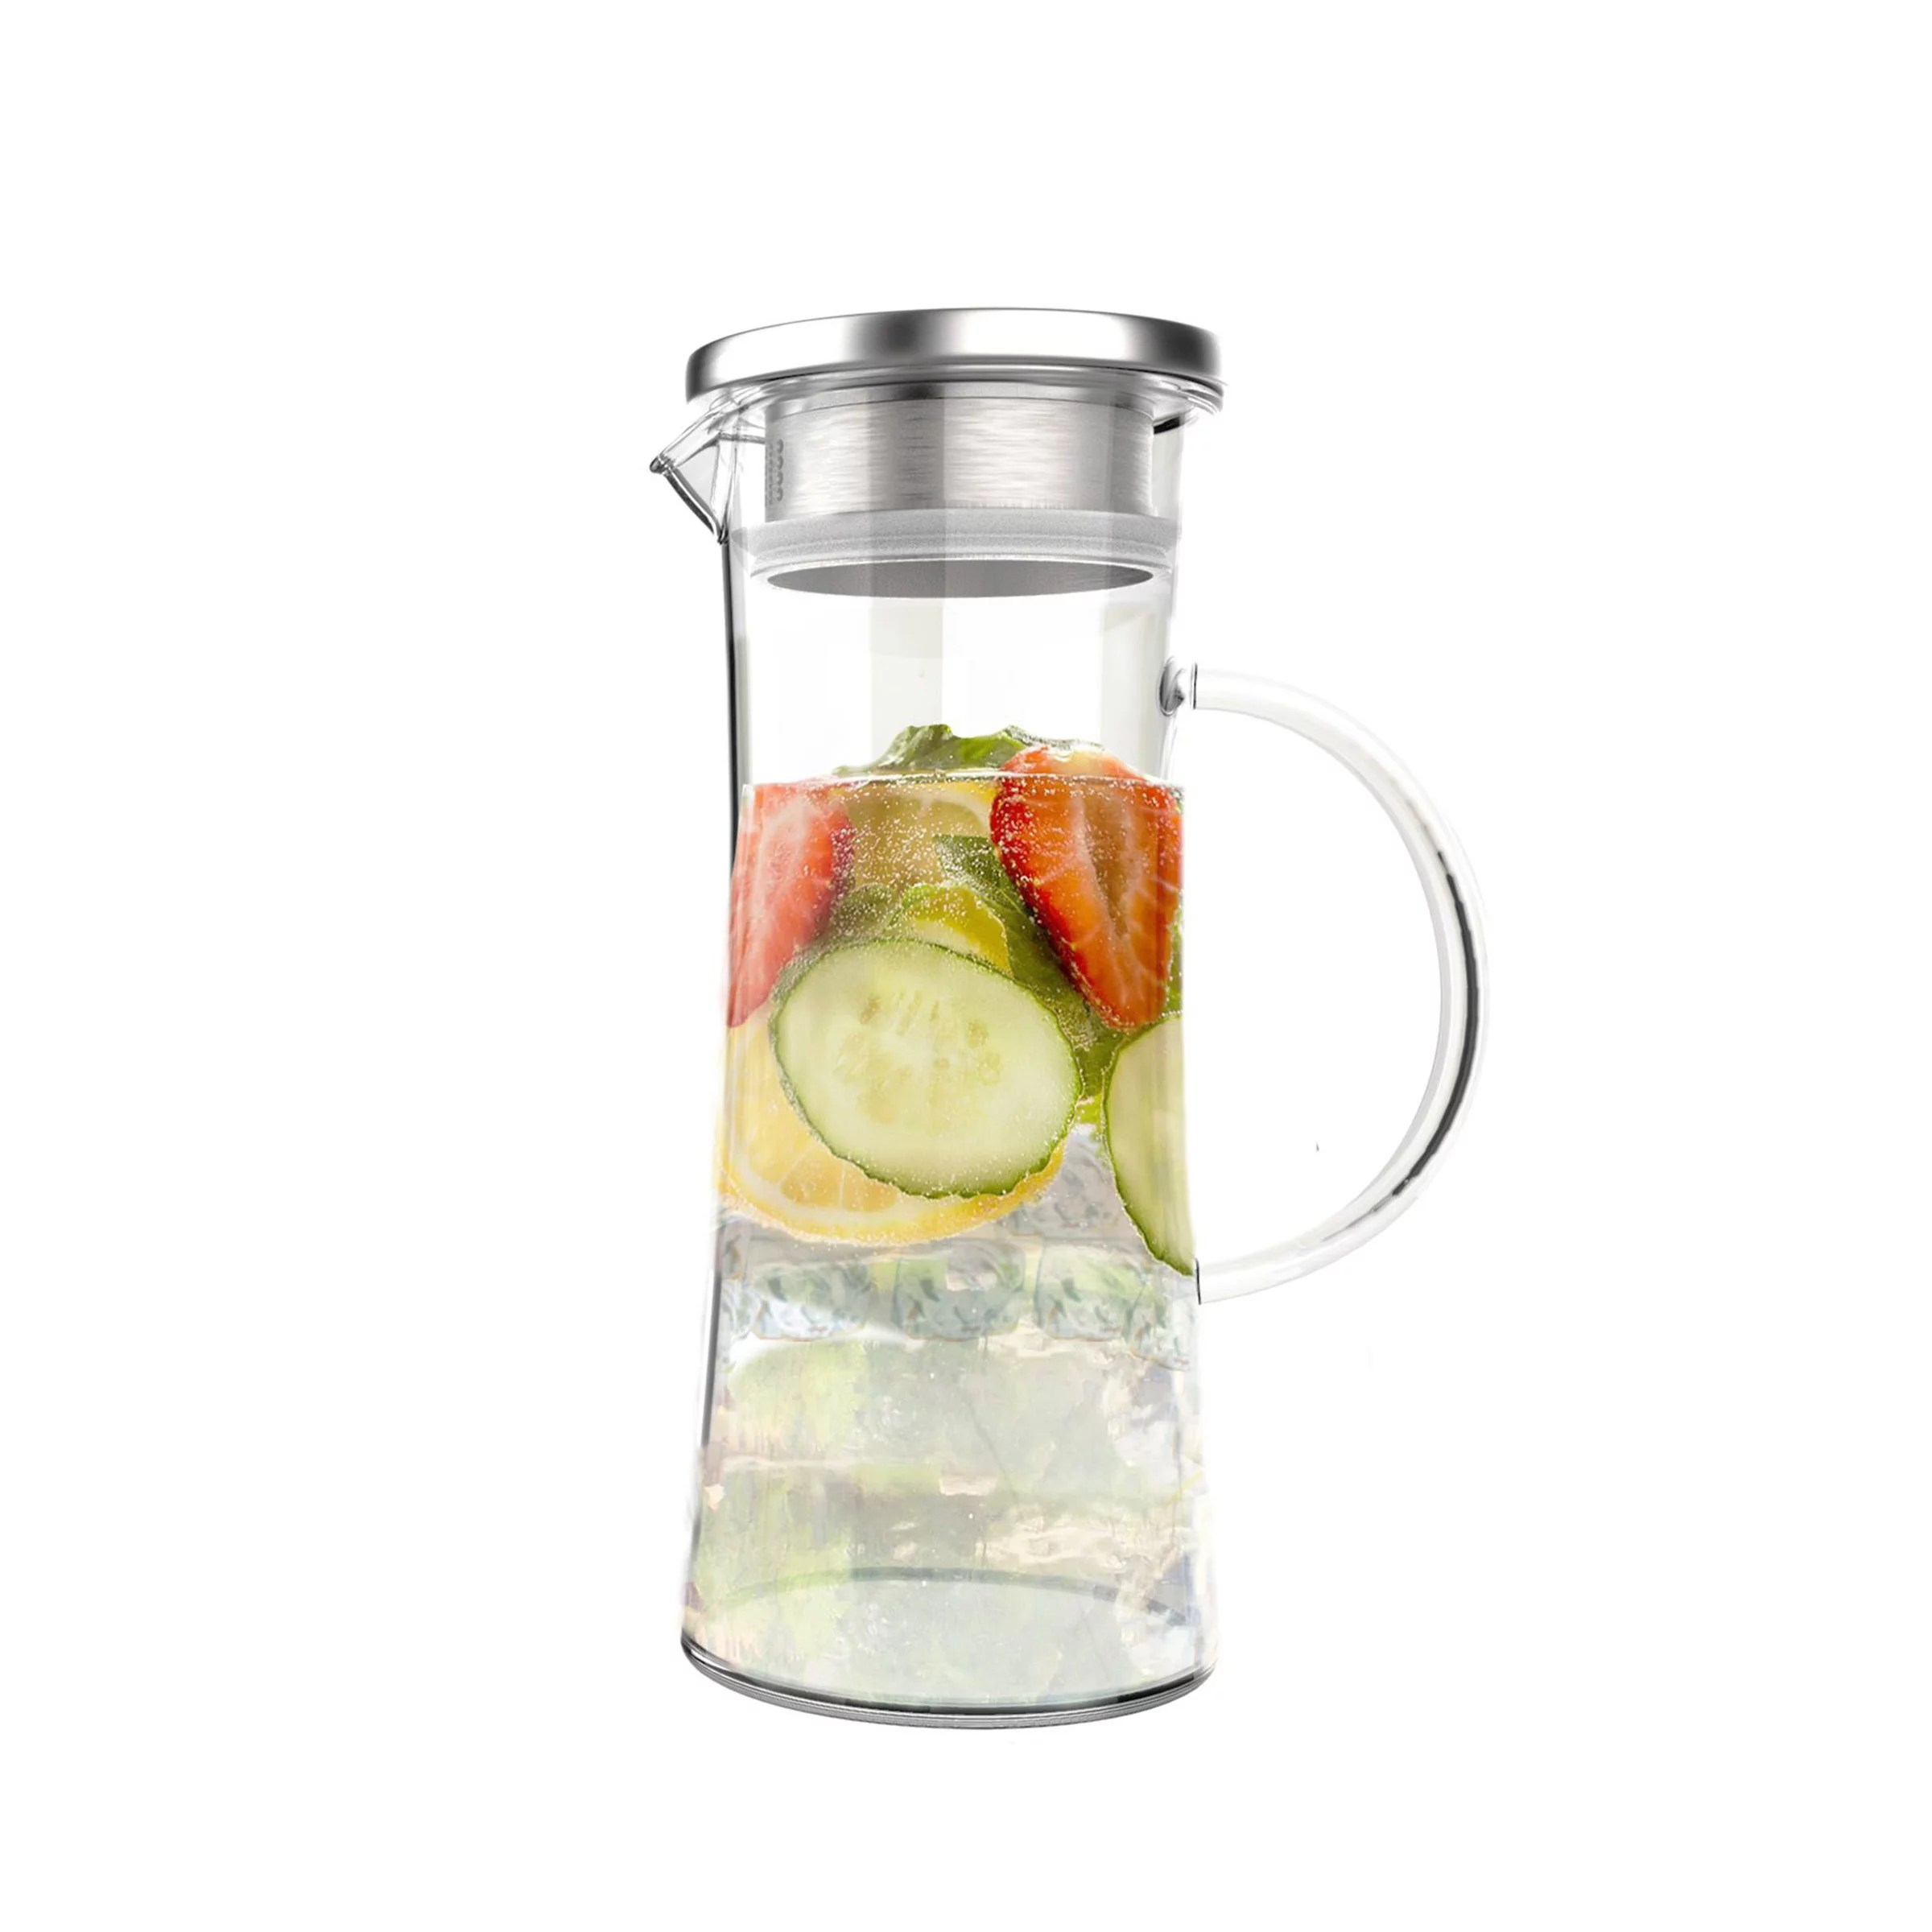 Heat Proof Pitcher Glass Pitcher 50oz Carafe With Stainless Steel Filter Lid